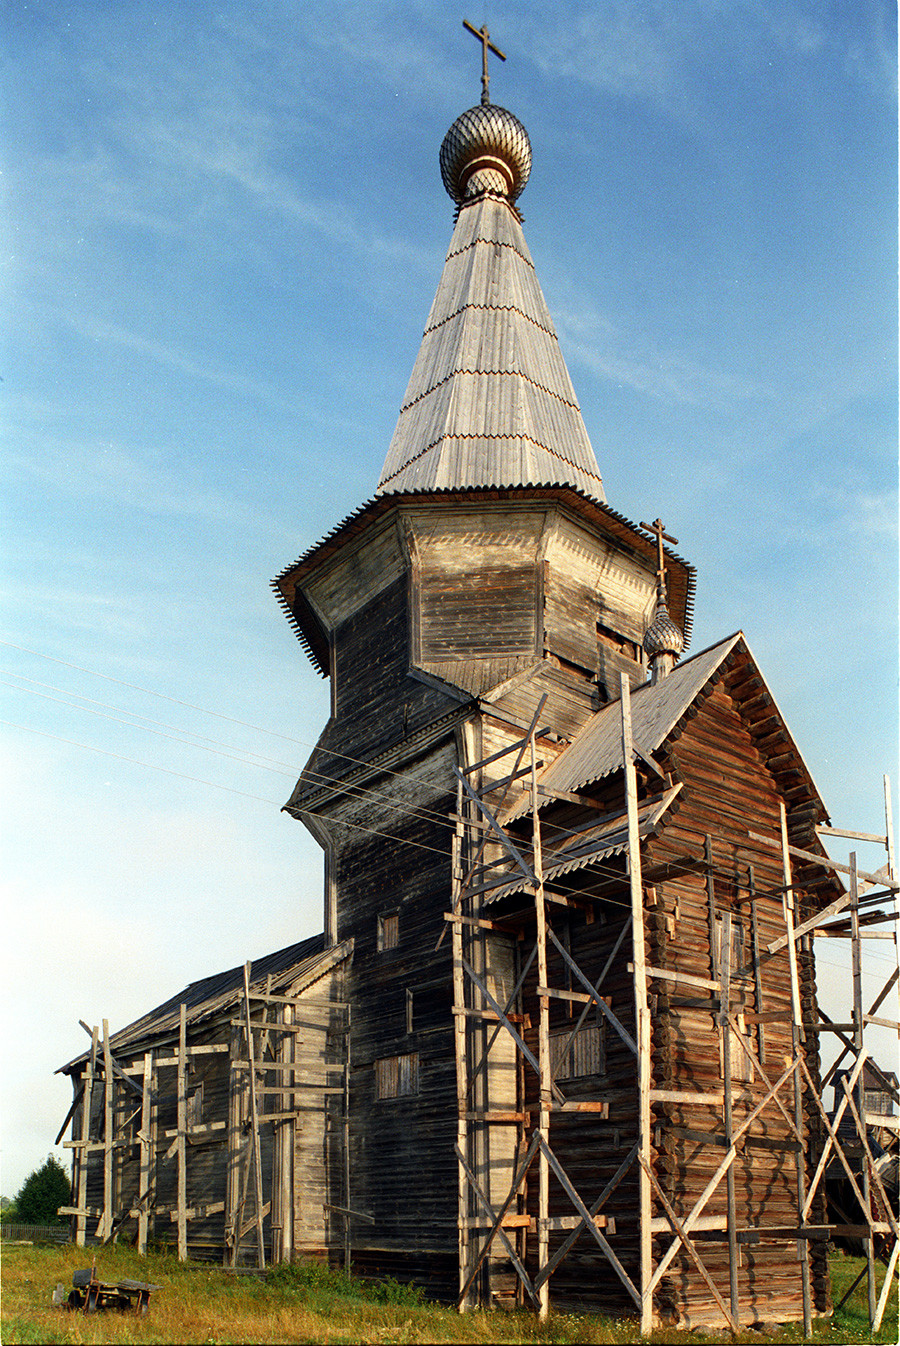 Church of Elijah the Prophet. Southeast view with remnants of restoration scaffolding. August 28, 2006